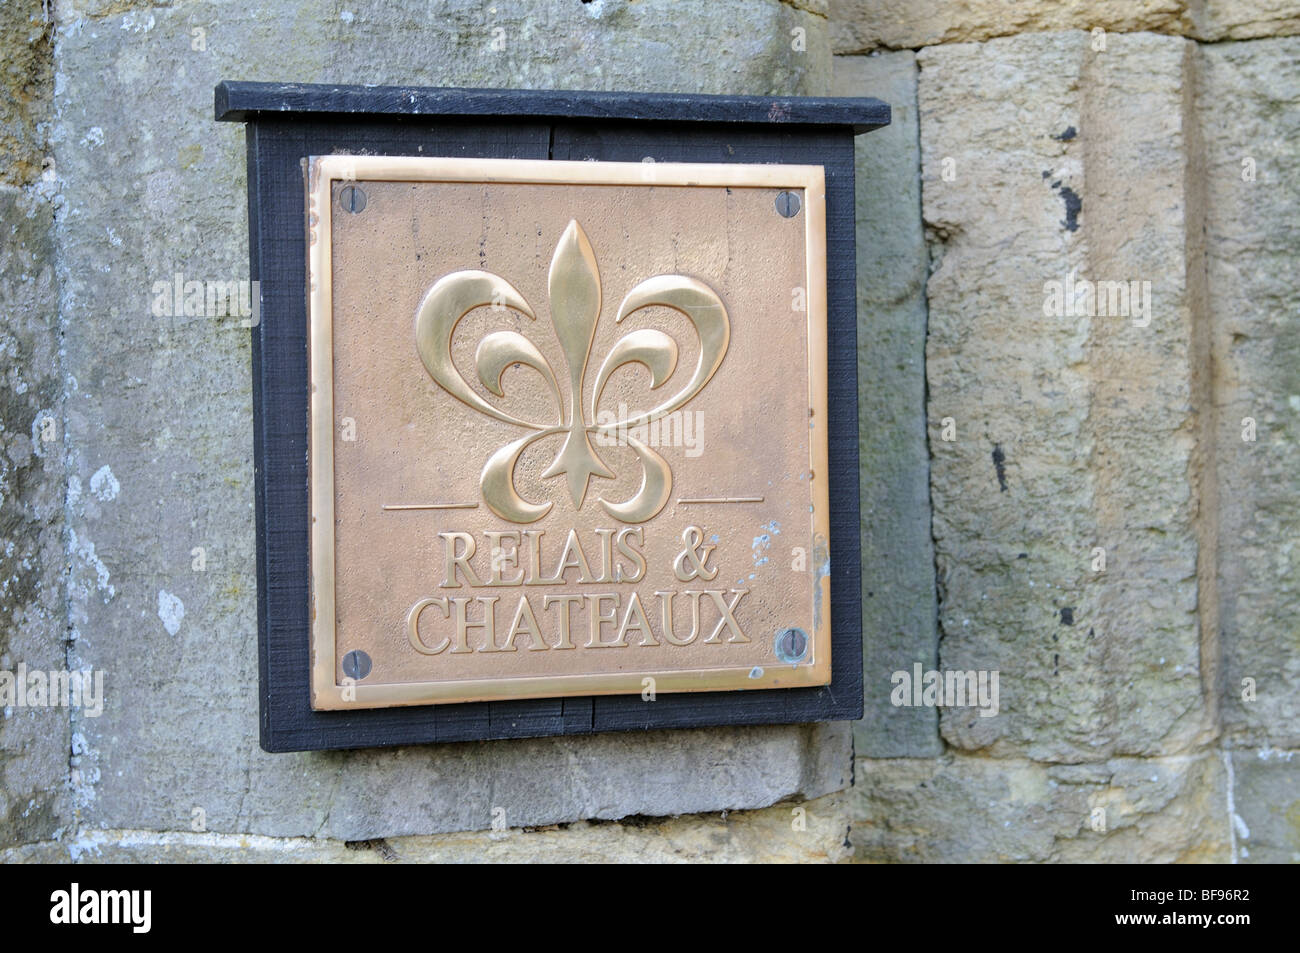 Relais & Chateaux organisation logo sign - Stock Image